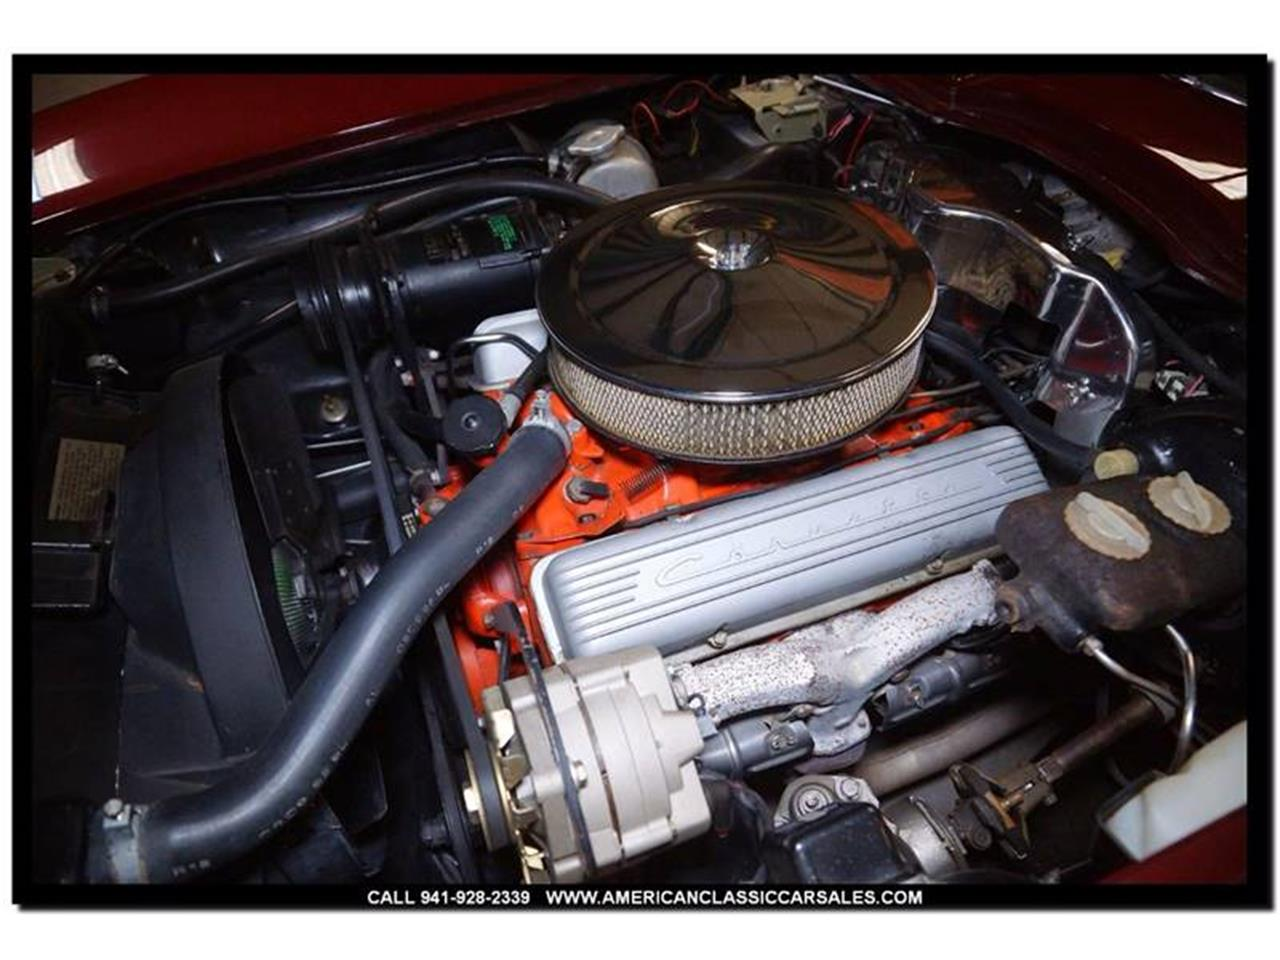 Large Picture of '66 Corvette - $74,880.00 - MHPA